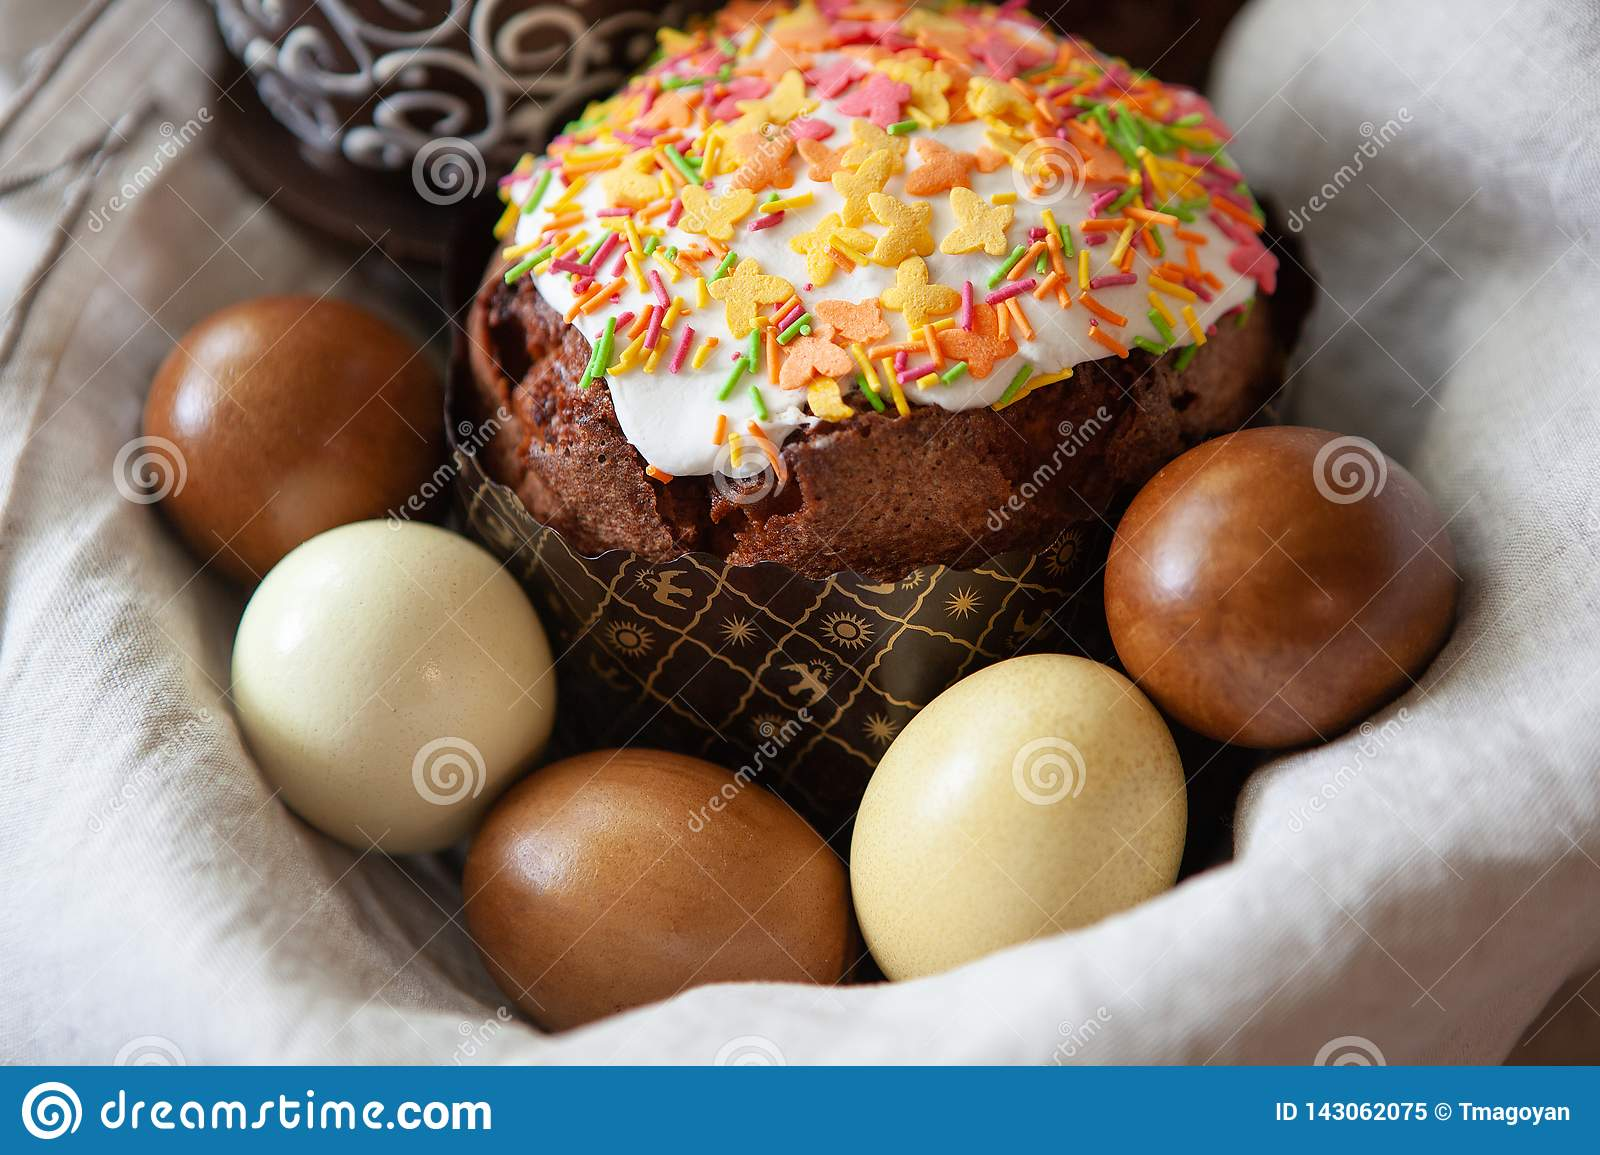 Easter composition with appetizing, beautifully decorated Easter cake, dyed eggs in a basket on linen fabric, close-up, side view